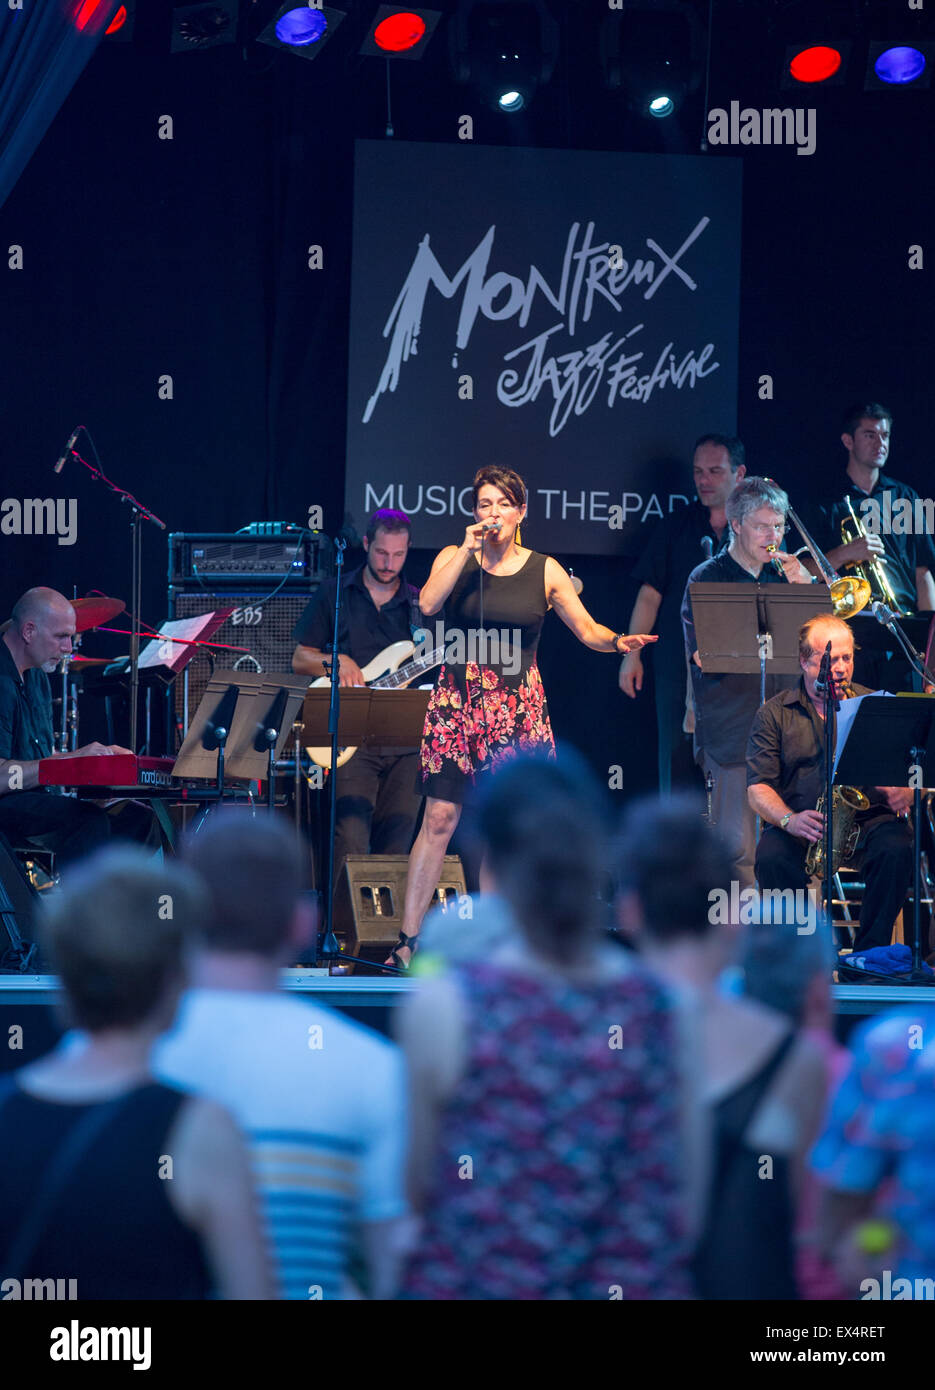 Montreux Jazz Festival 2015 >> Montreux Switzerland 6th July 2015 Members Of A Local Student